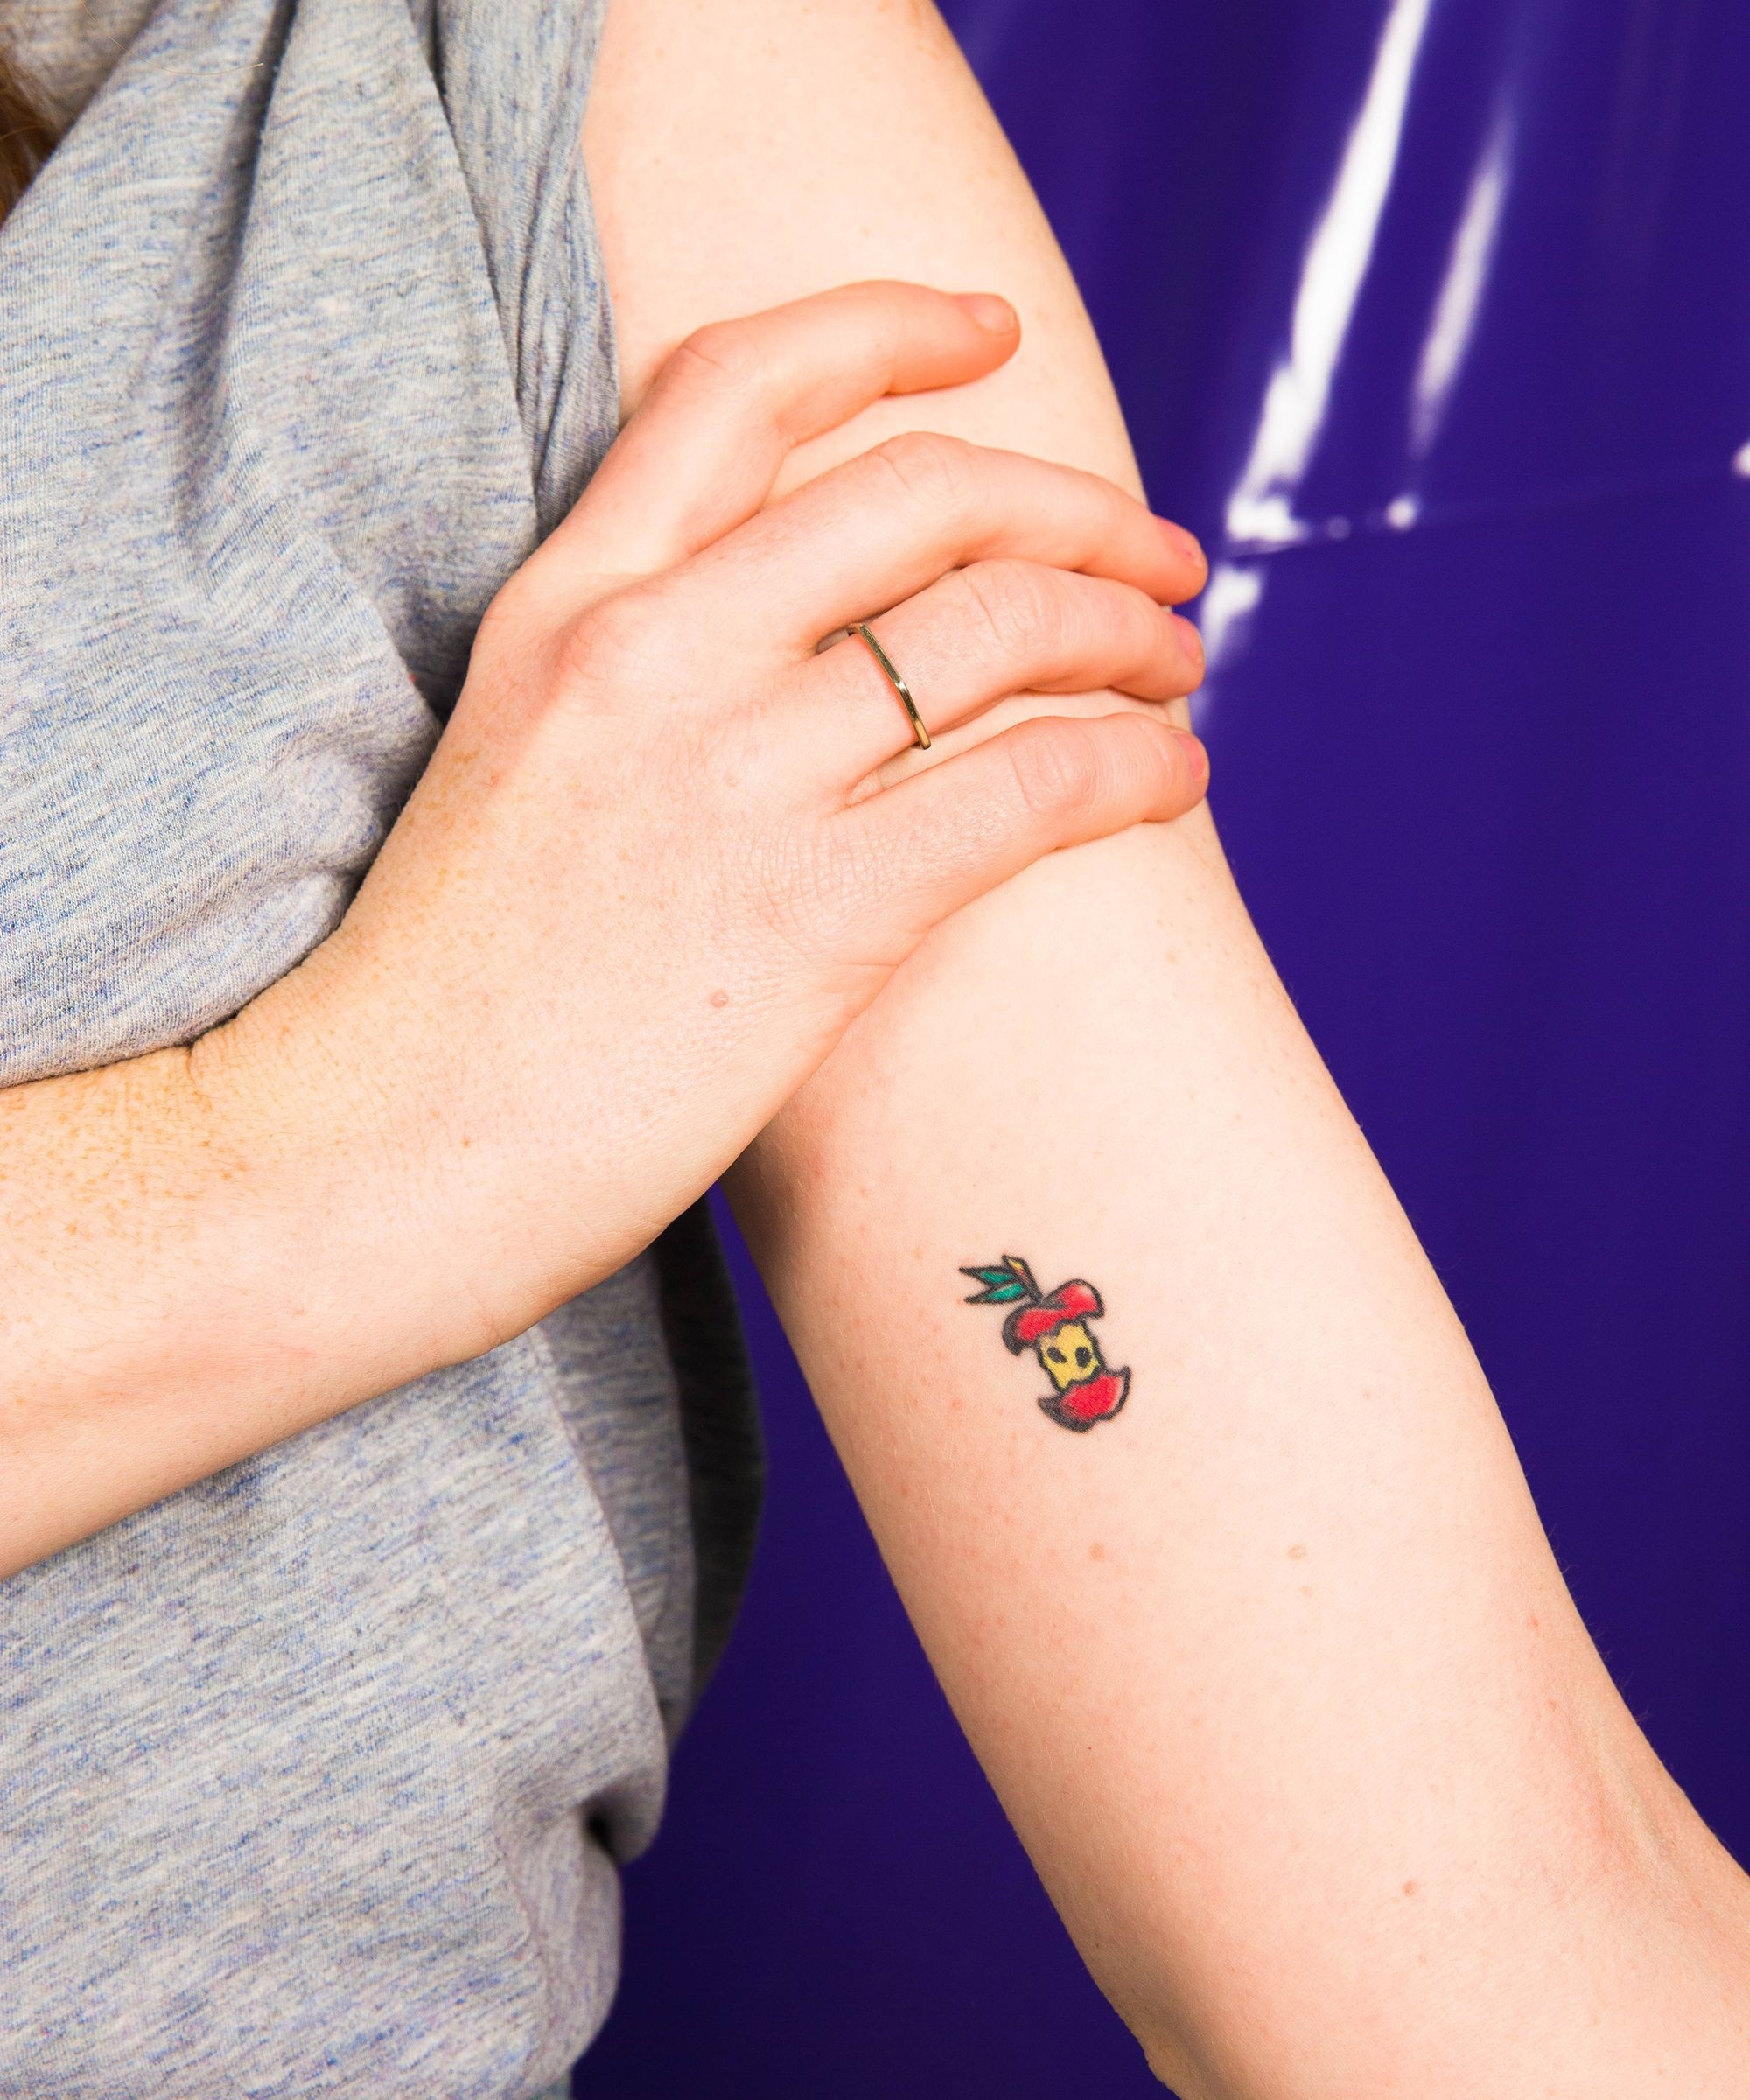 When To Get A Tattoo If You Want The Best Sale Price